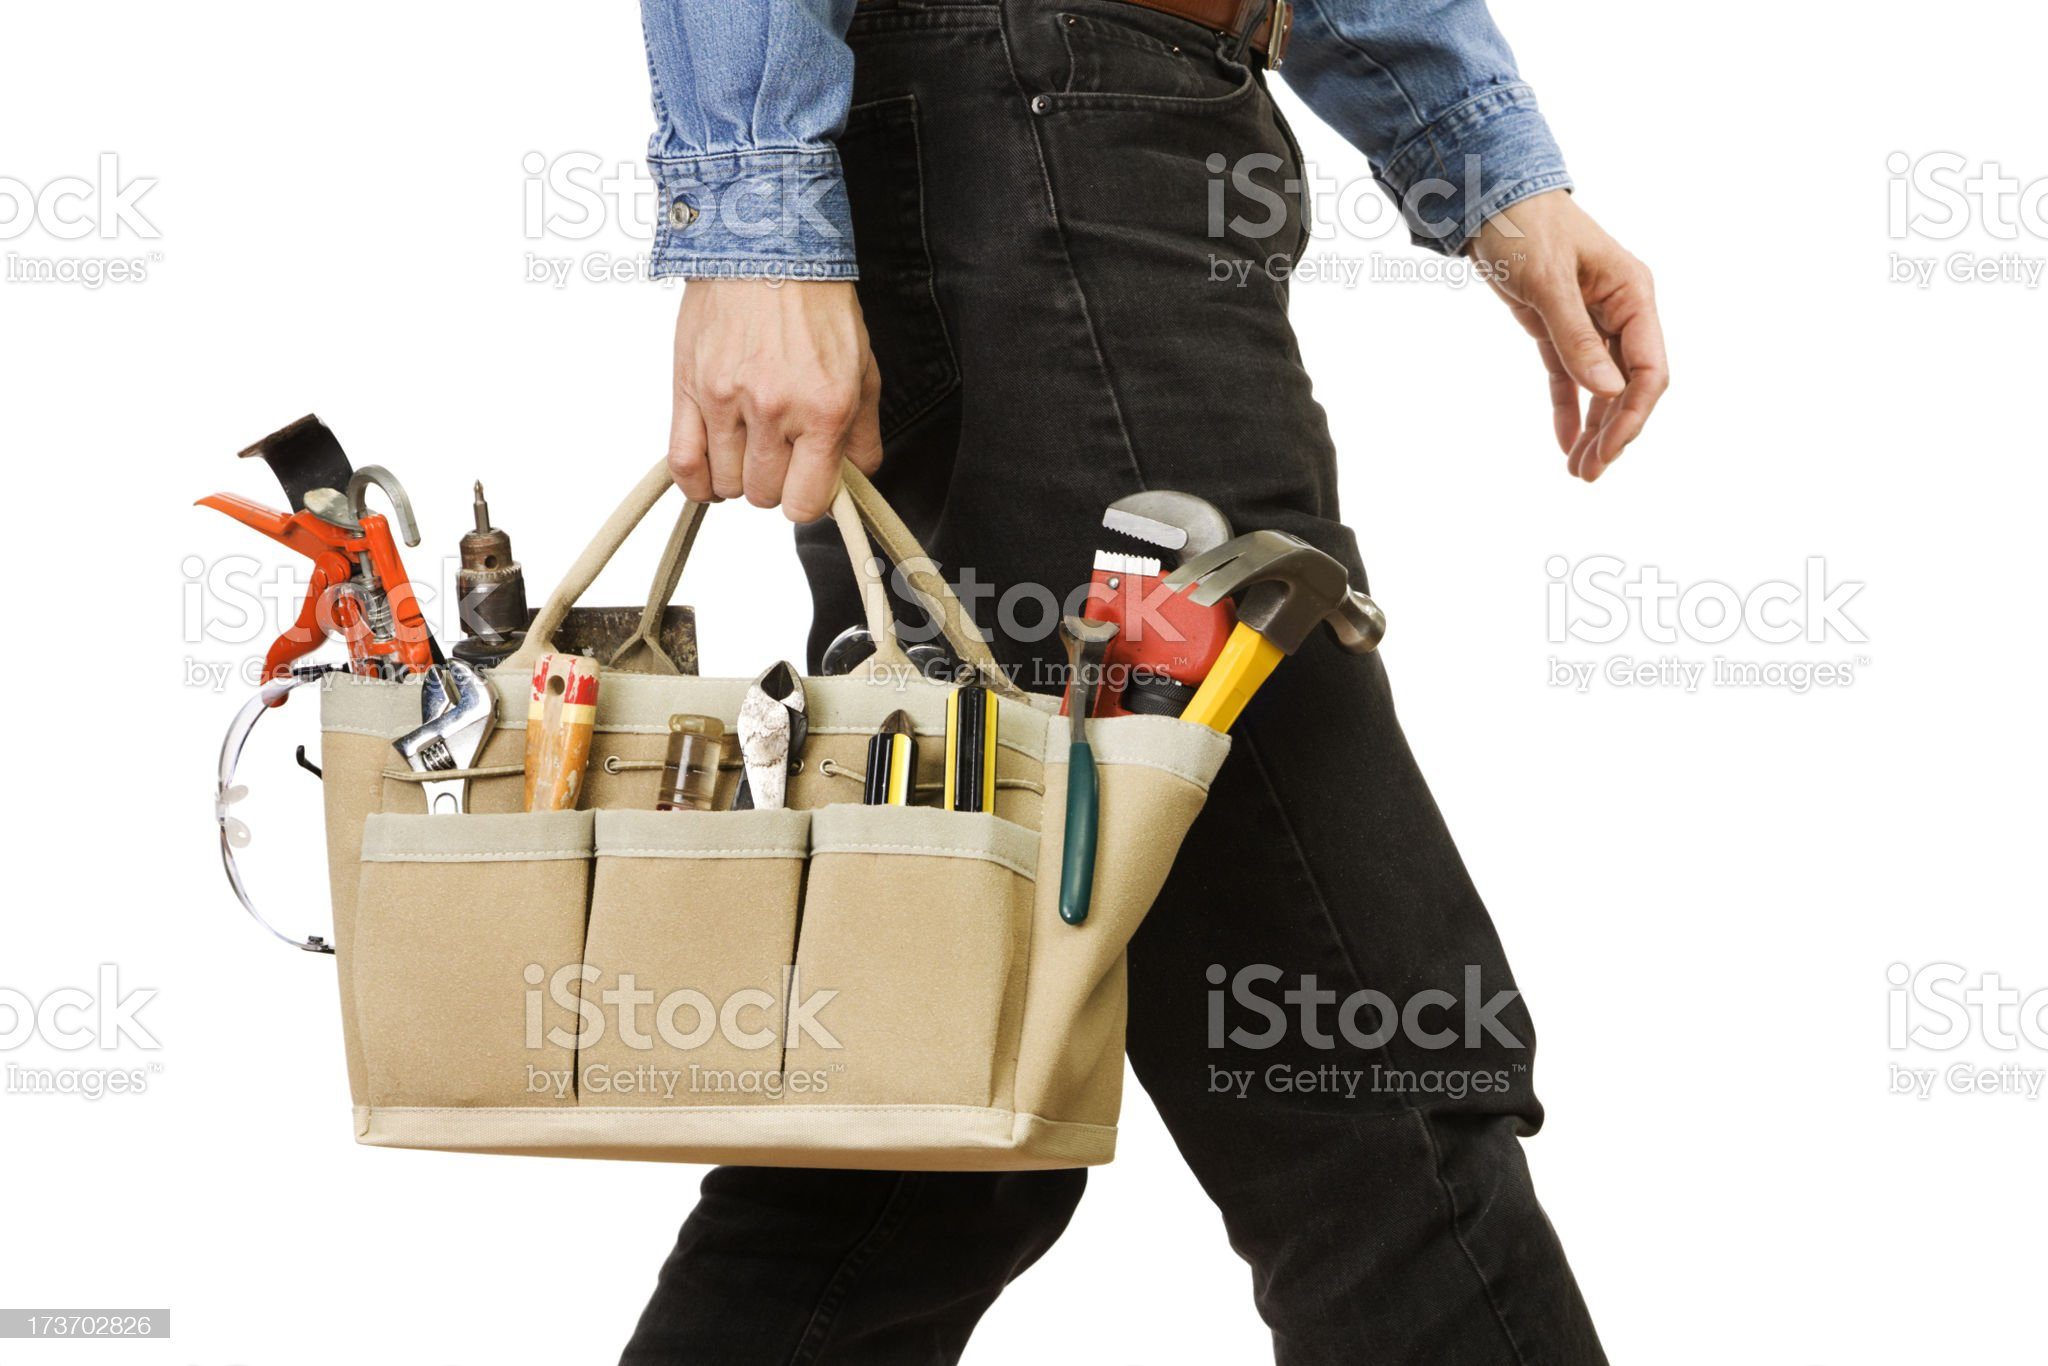 Handyman Carrying Tools, Home Repair Equipment Kit on White Background royalty-free stock photo